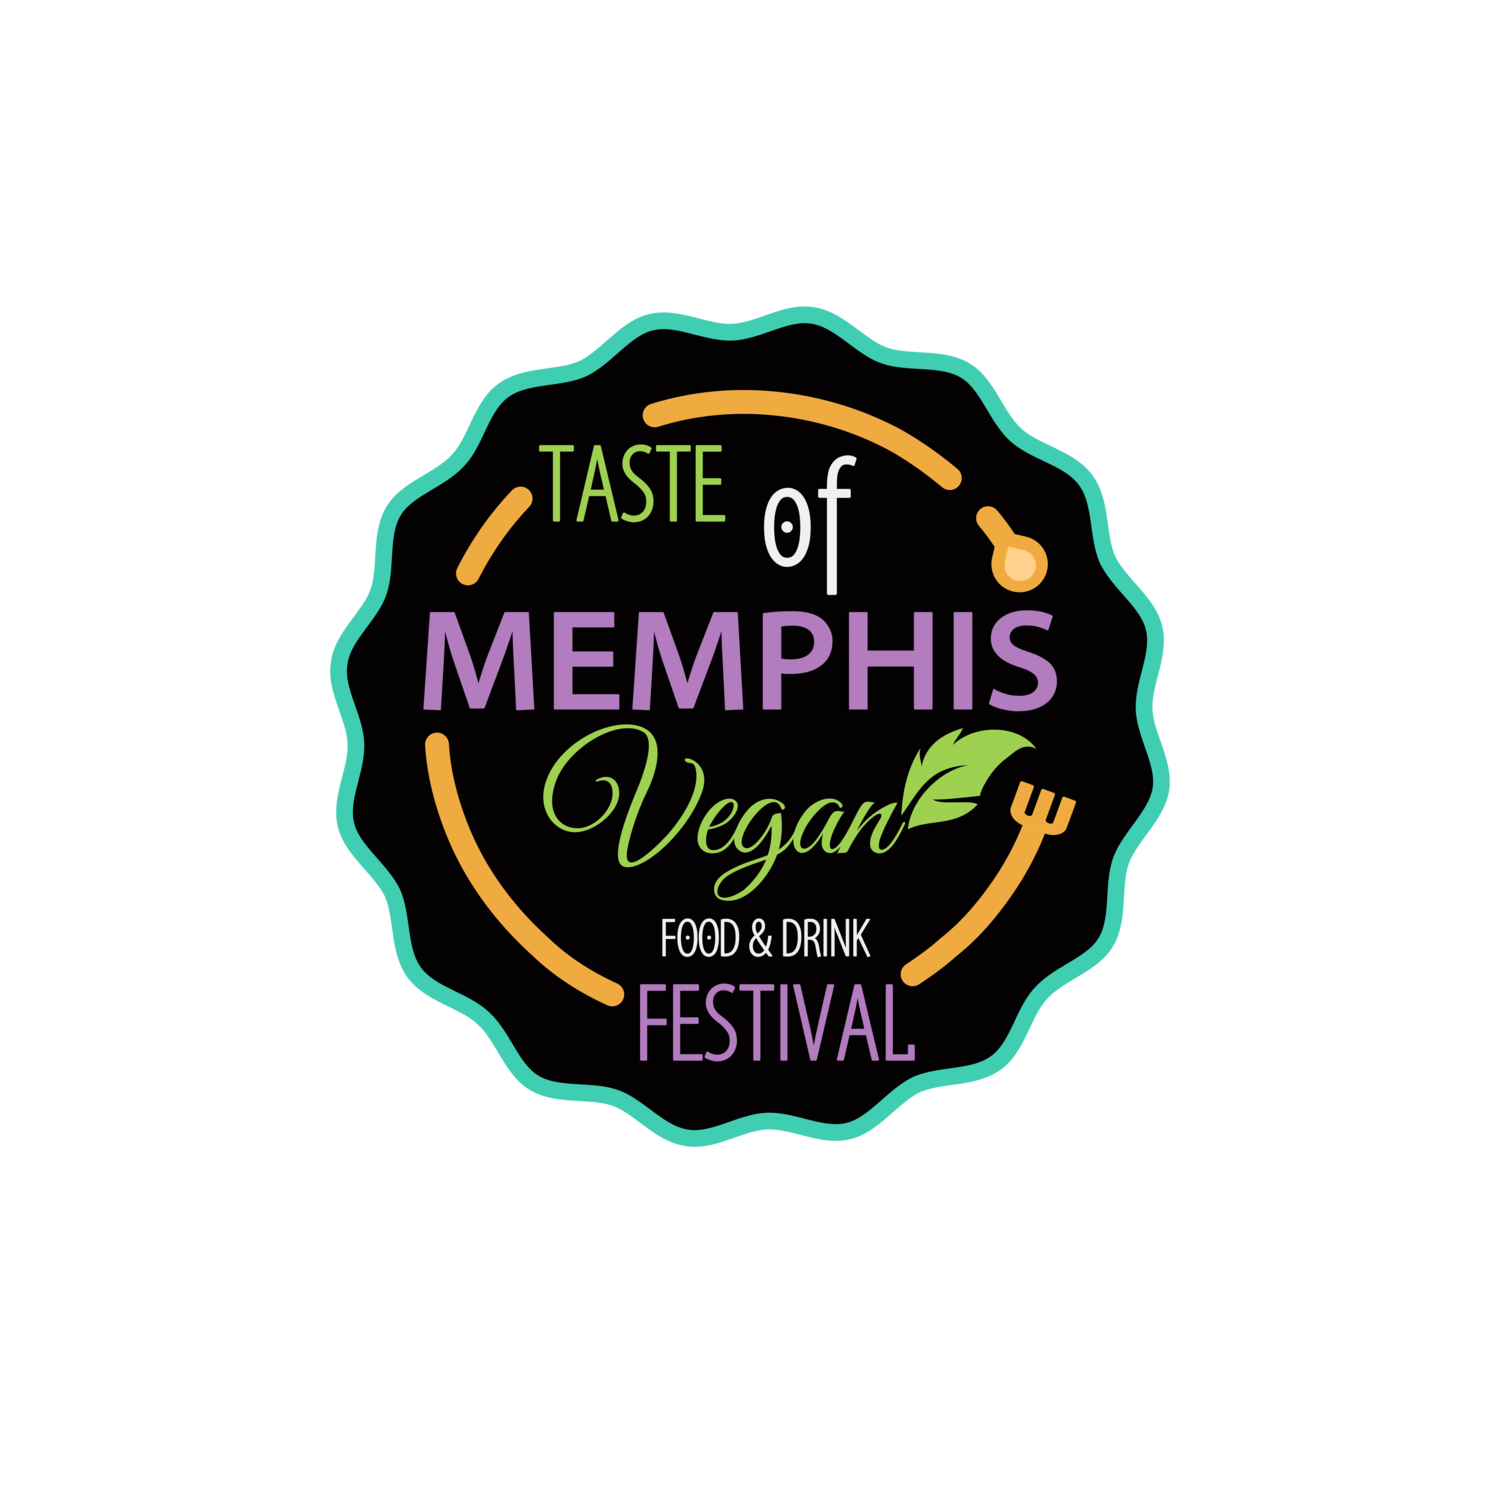 Taste of Memphis Vegan Food & Drink Festival